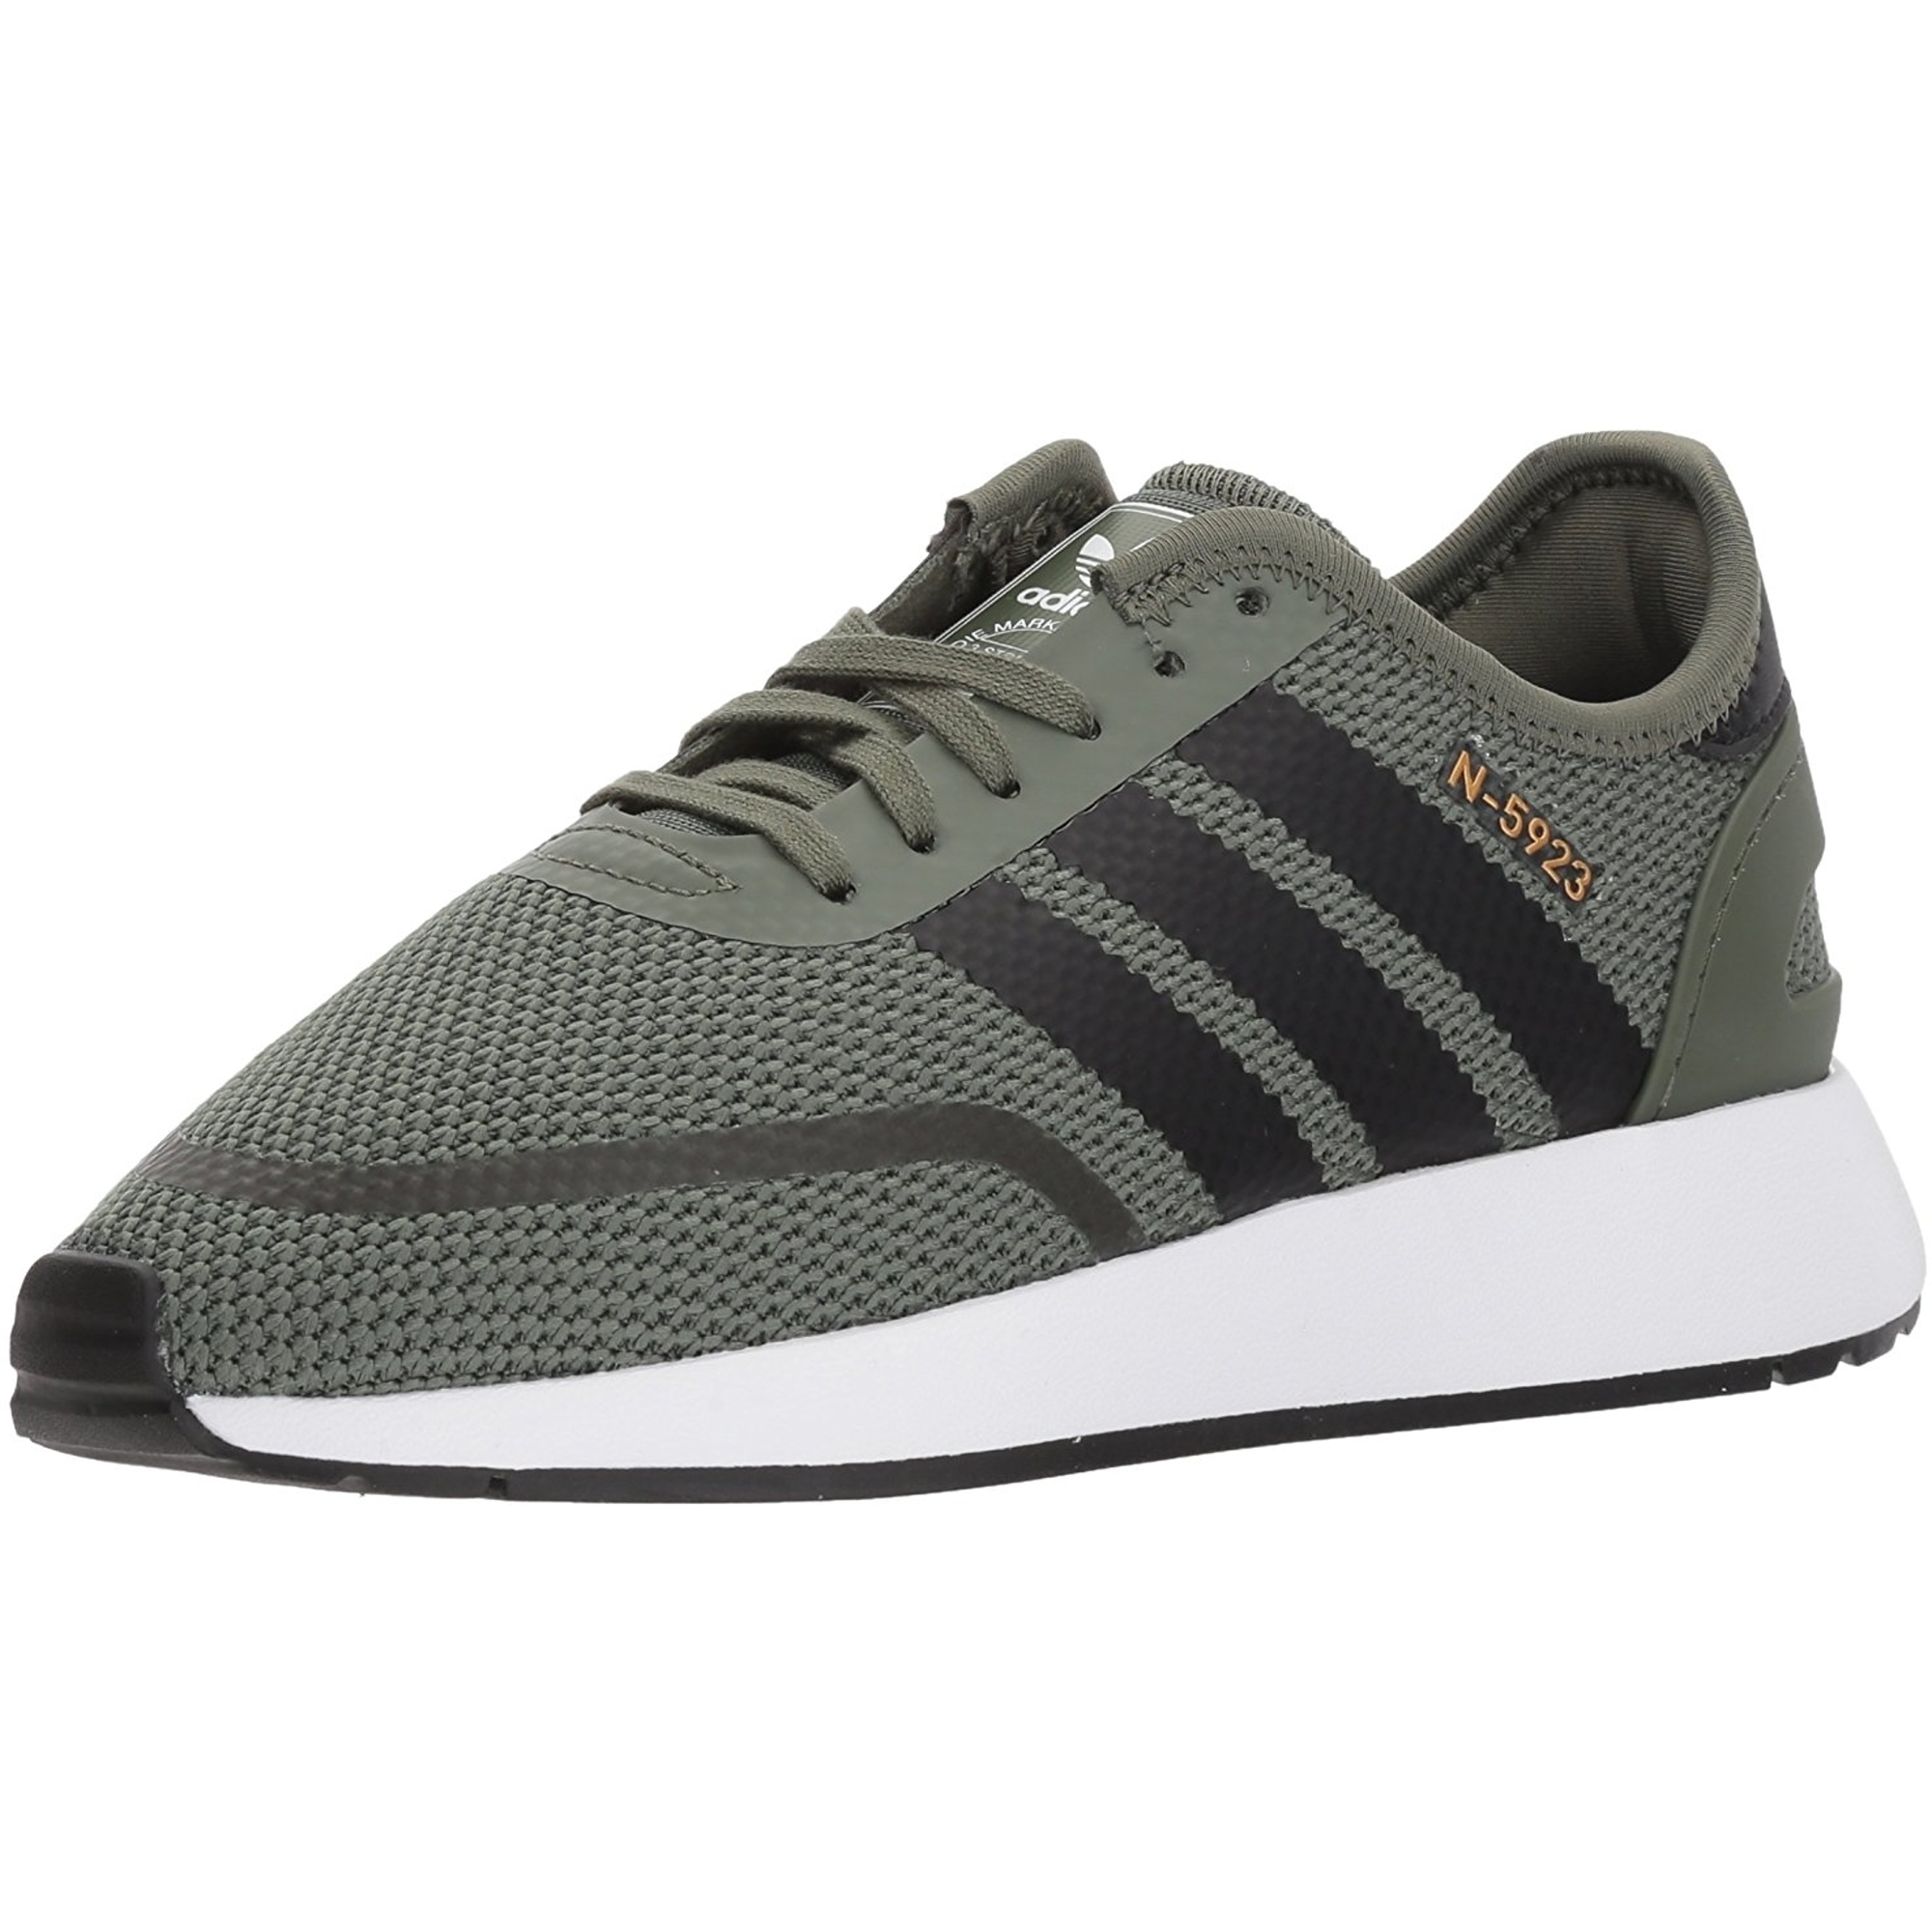 adidas campus formateurs adidas formateurs green campus campus green formateurs adidas adidas campus green IWDH2YE9